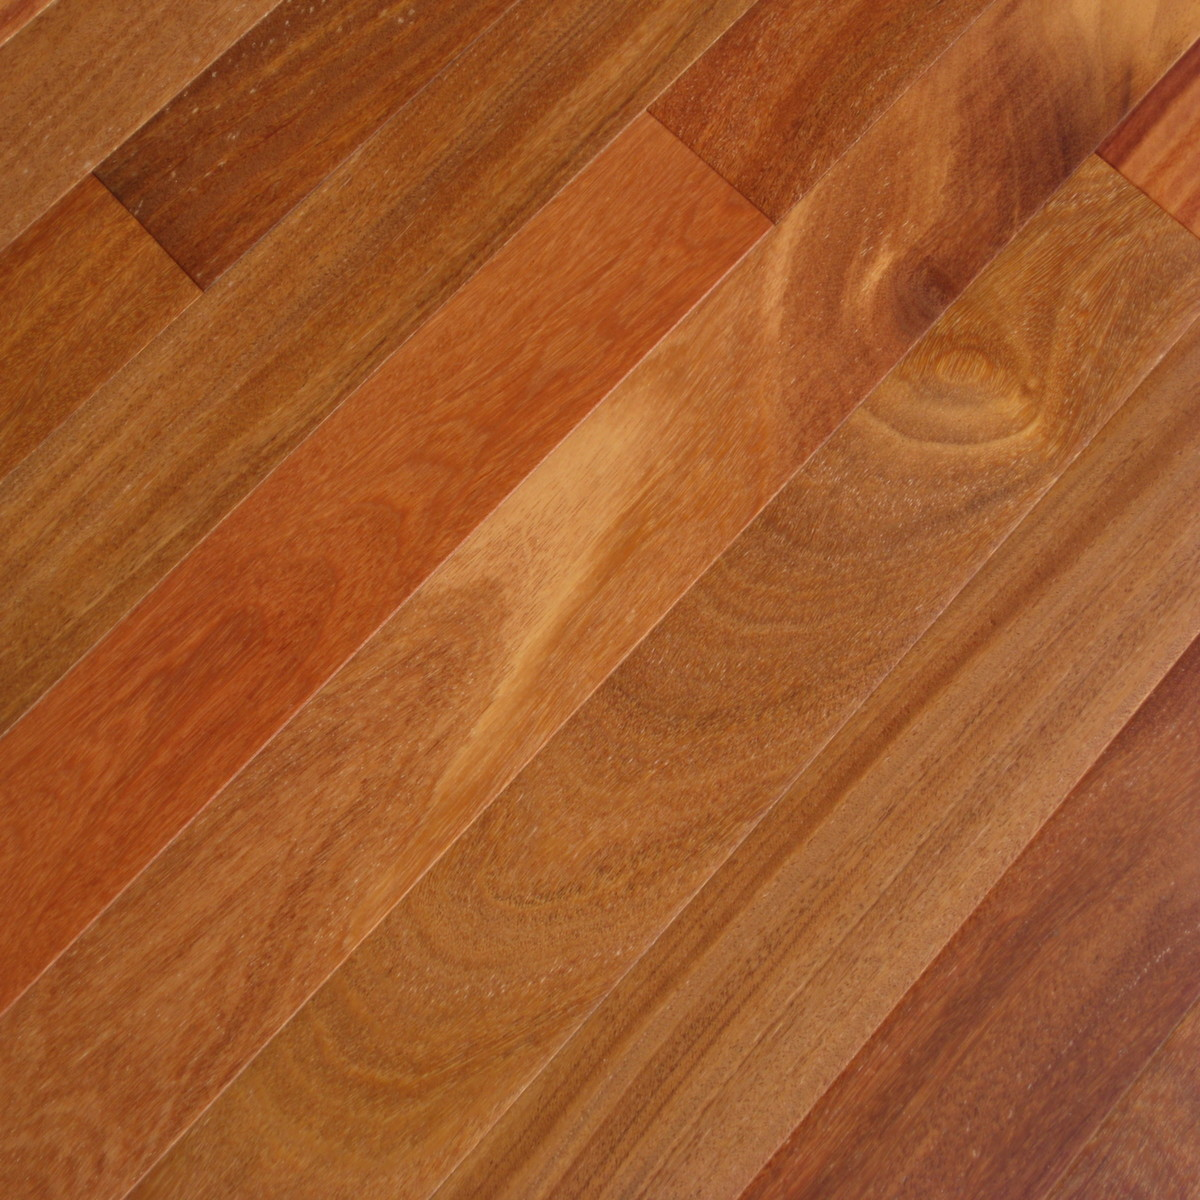 Dark (Brazilian Teak) Hardwood Flooring | Prefinished Solid Hardwood ...